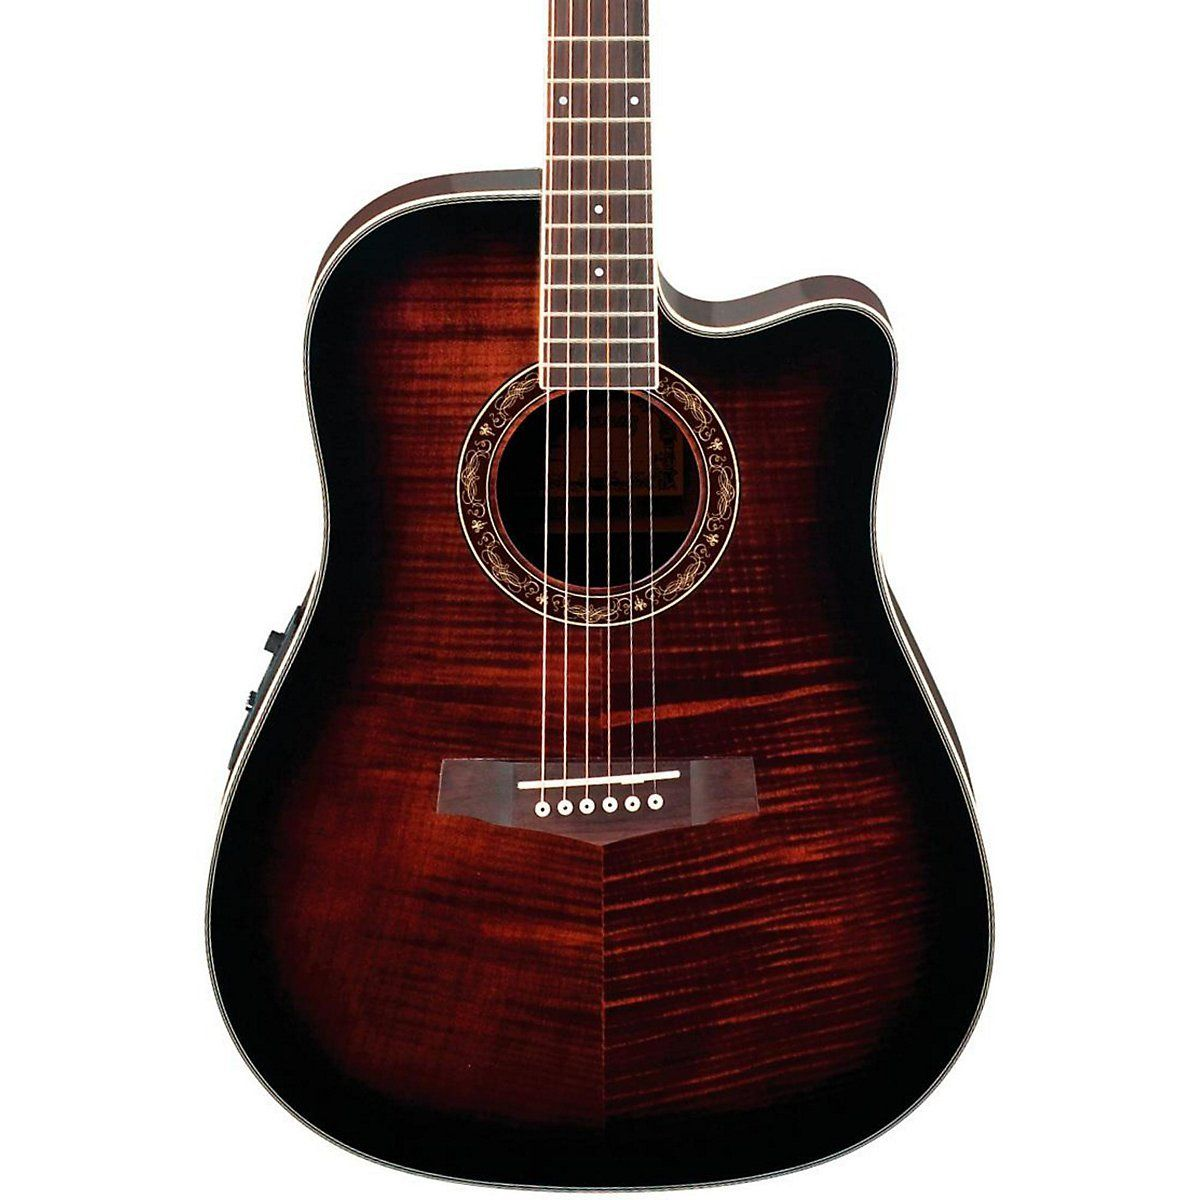 Robot Check Acoustic Electric Guitar Acoustic Electric Bass Guitars For Sale